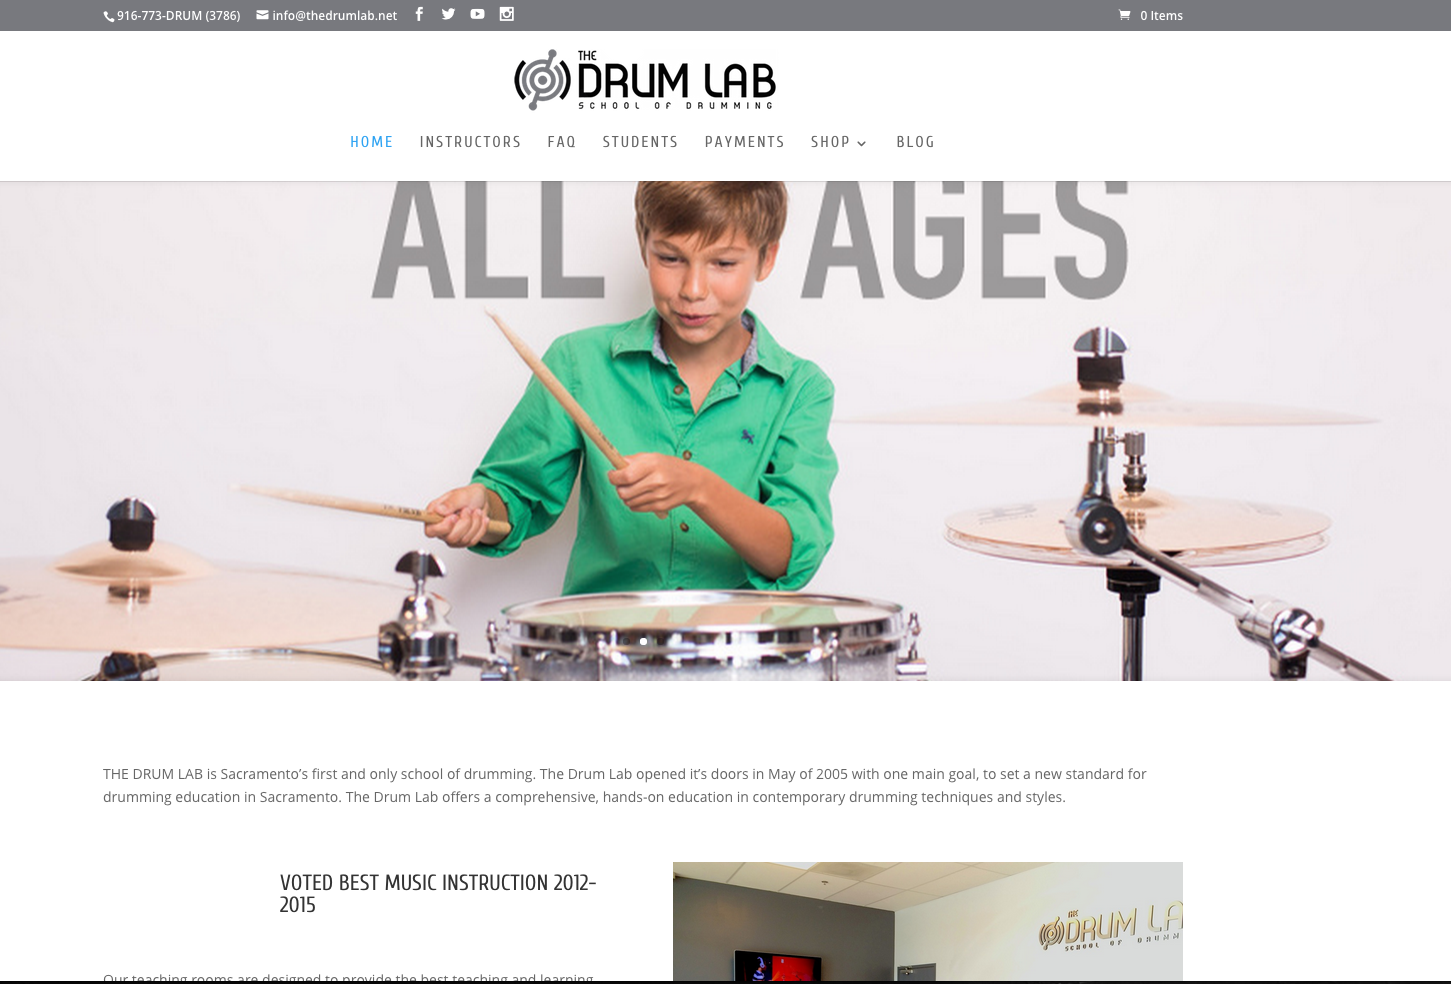 Screen-Shot-2015-08-27-at-3.27.34-PM The Drum Lab